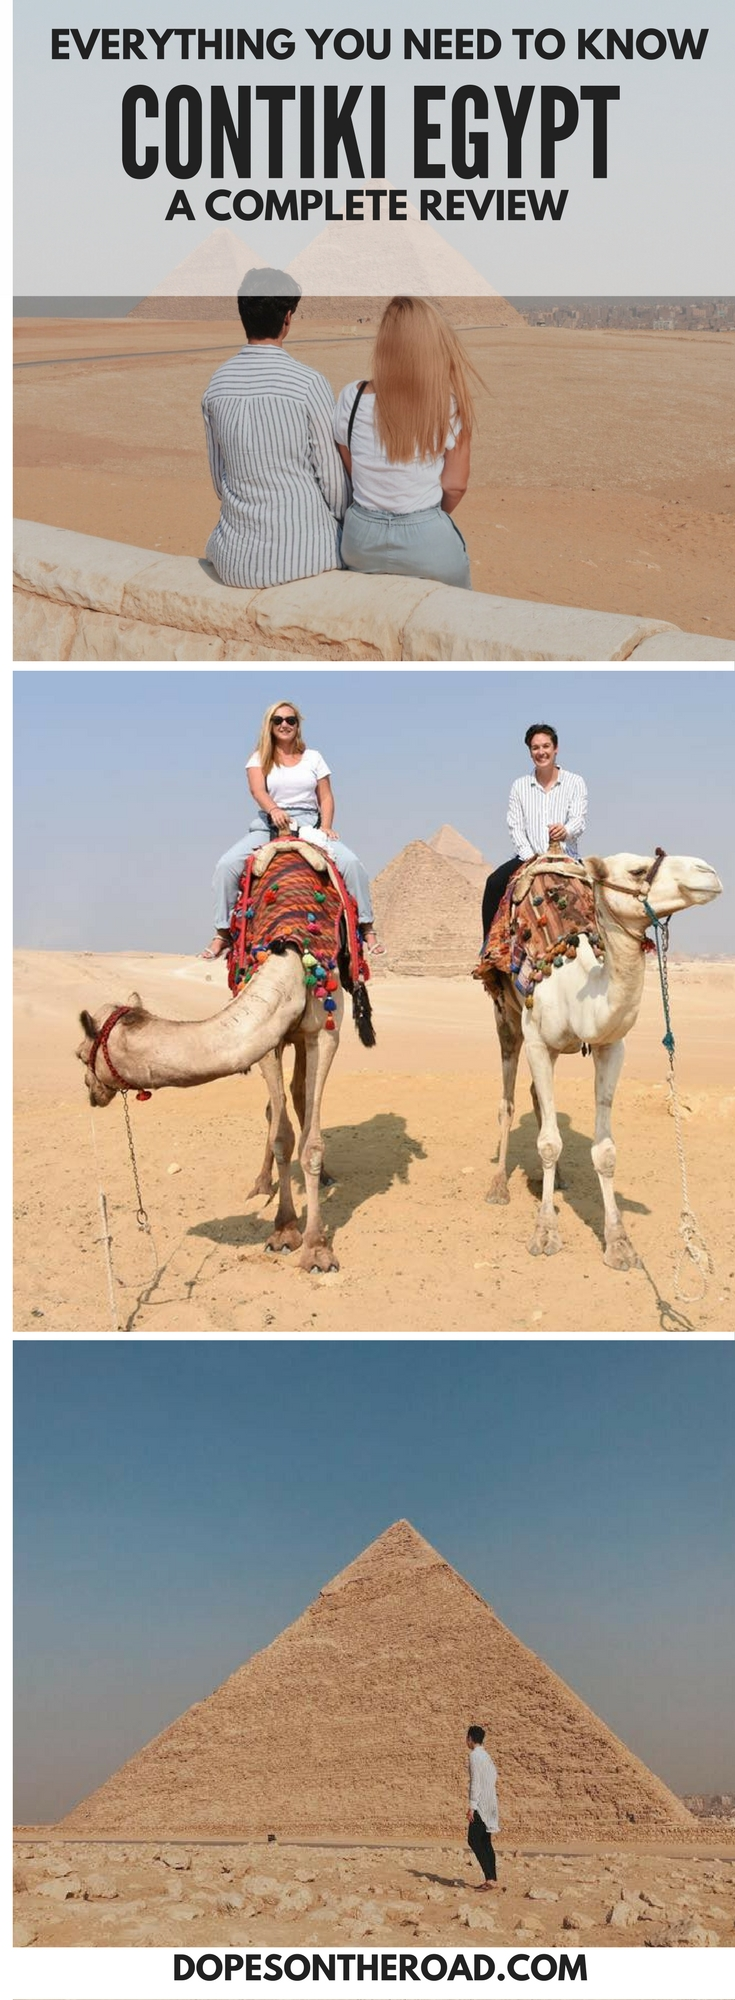 Everything you need to know about Contiki Egypt. This LGBT friendly Egypt guide will show you all the behind the scenes of Contiki's Egypt Tour.